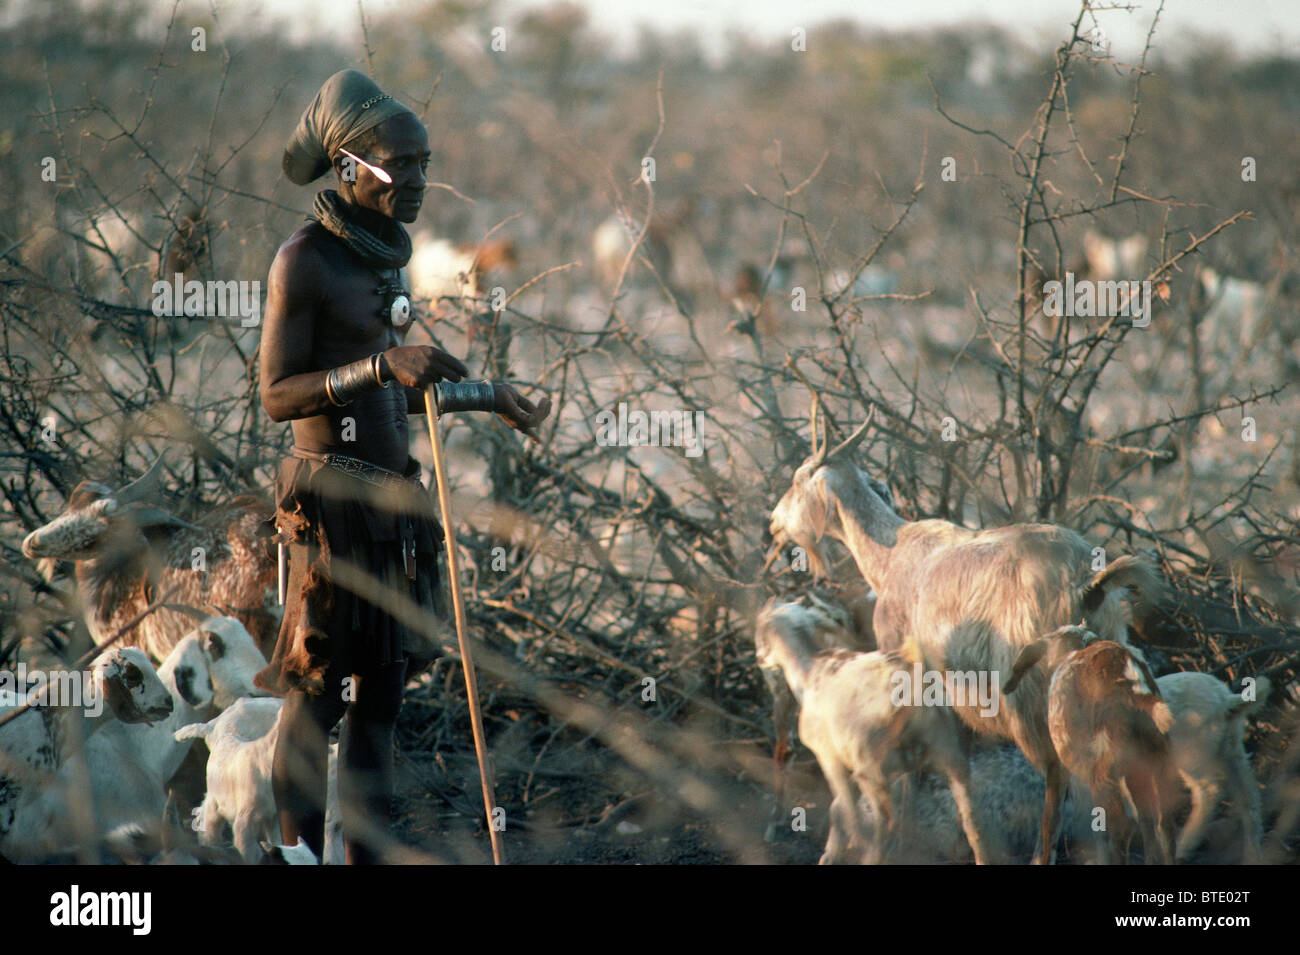 Himba man tending goats in their kraal - Stock Image